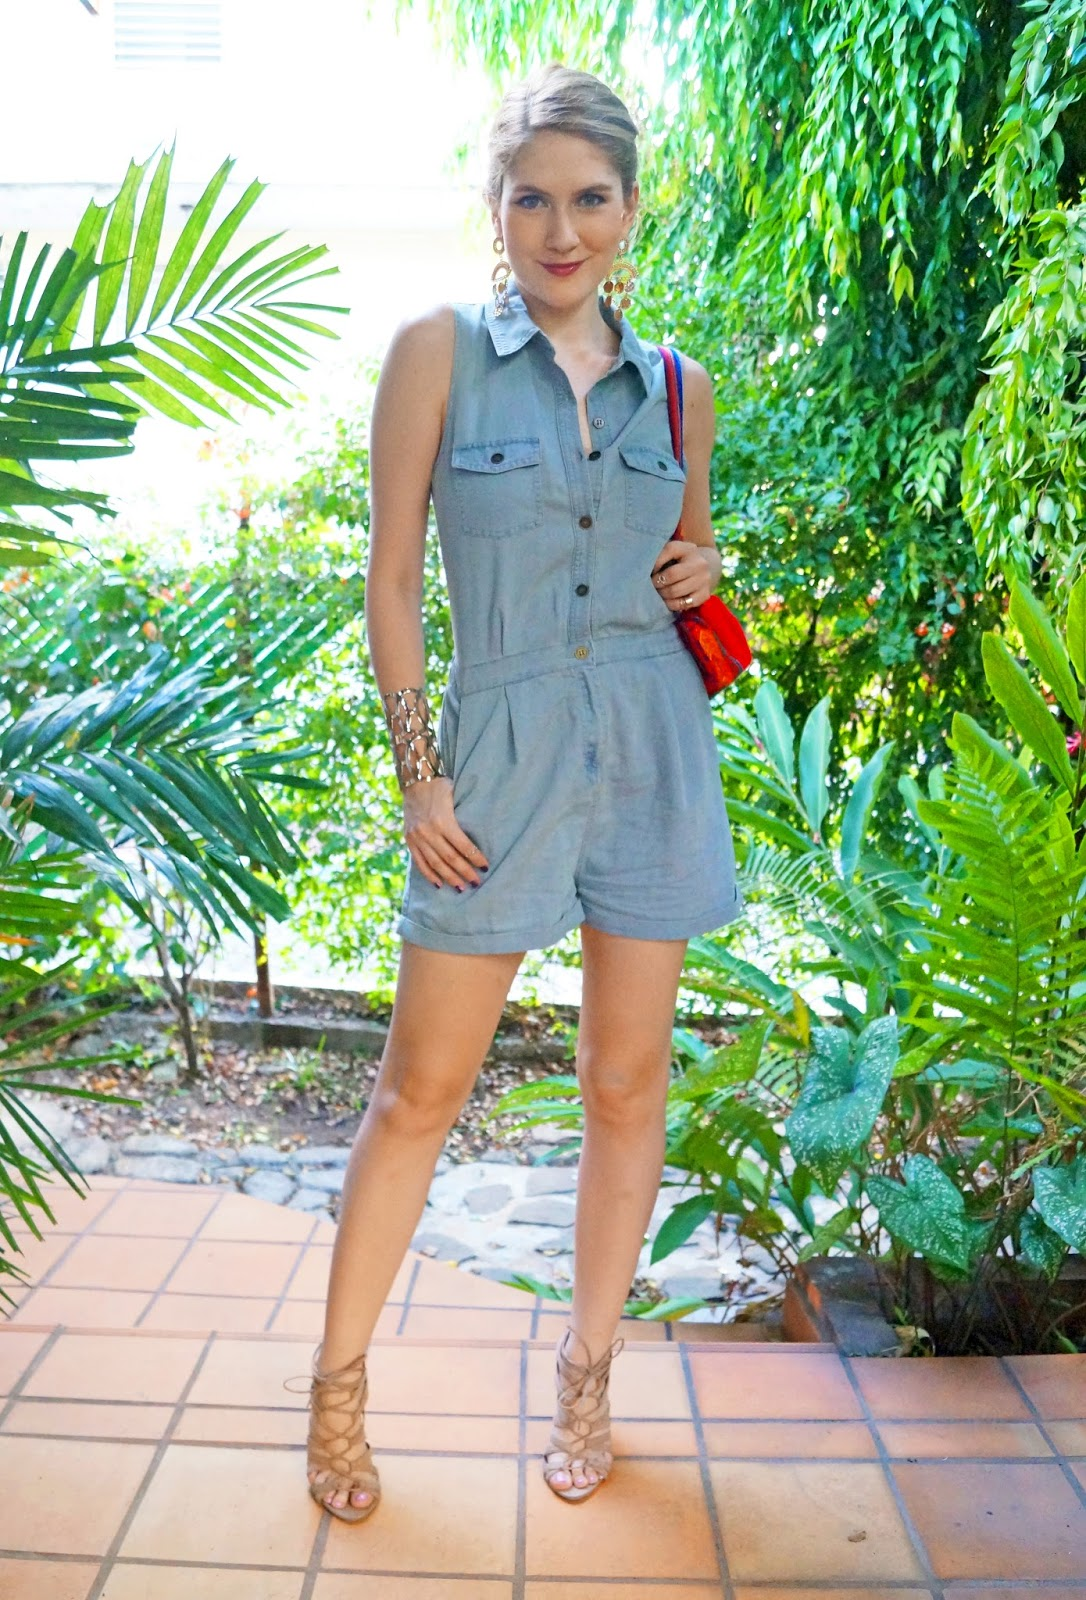 Summer Rompers | Dressed Up Girl